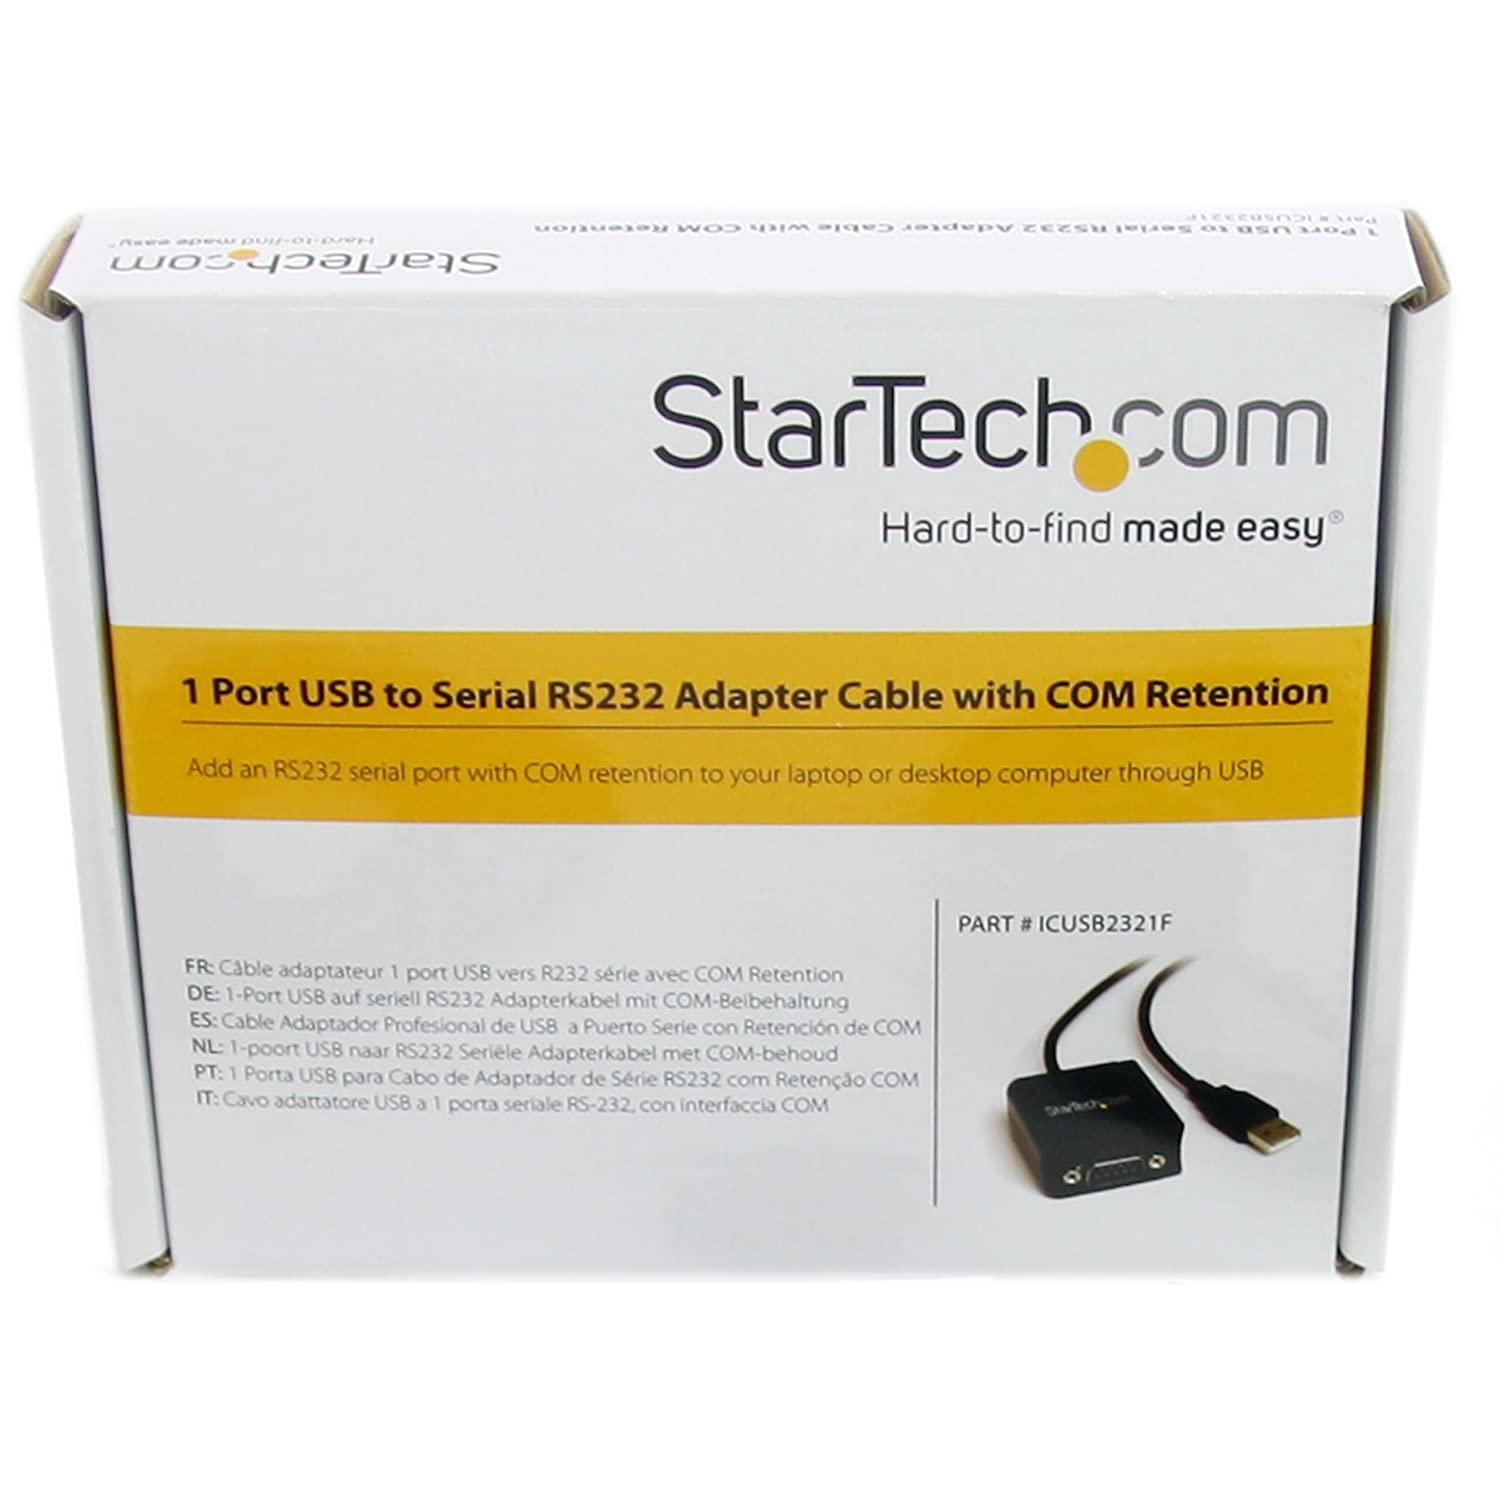 STARTECH ICUSB2321F DRIVERS FOR WINDOWS 7